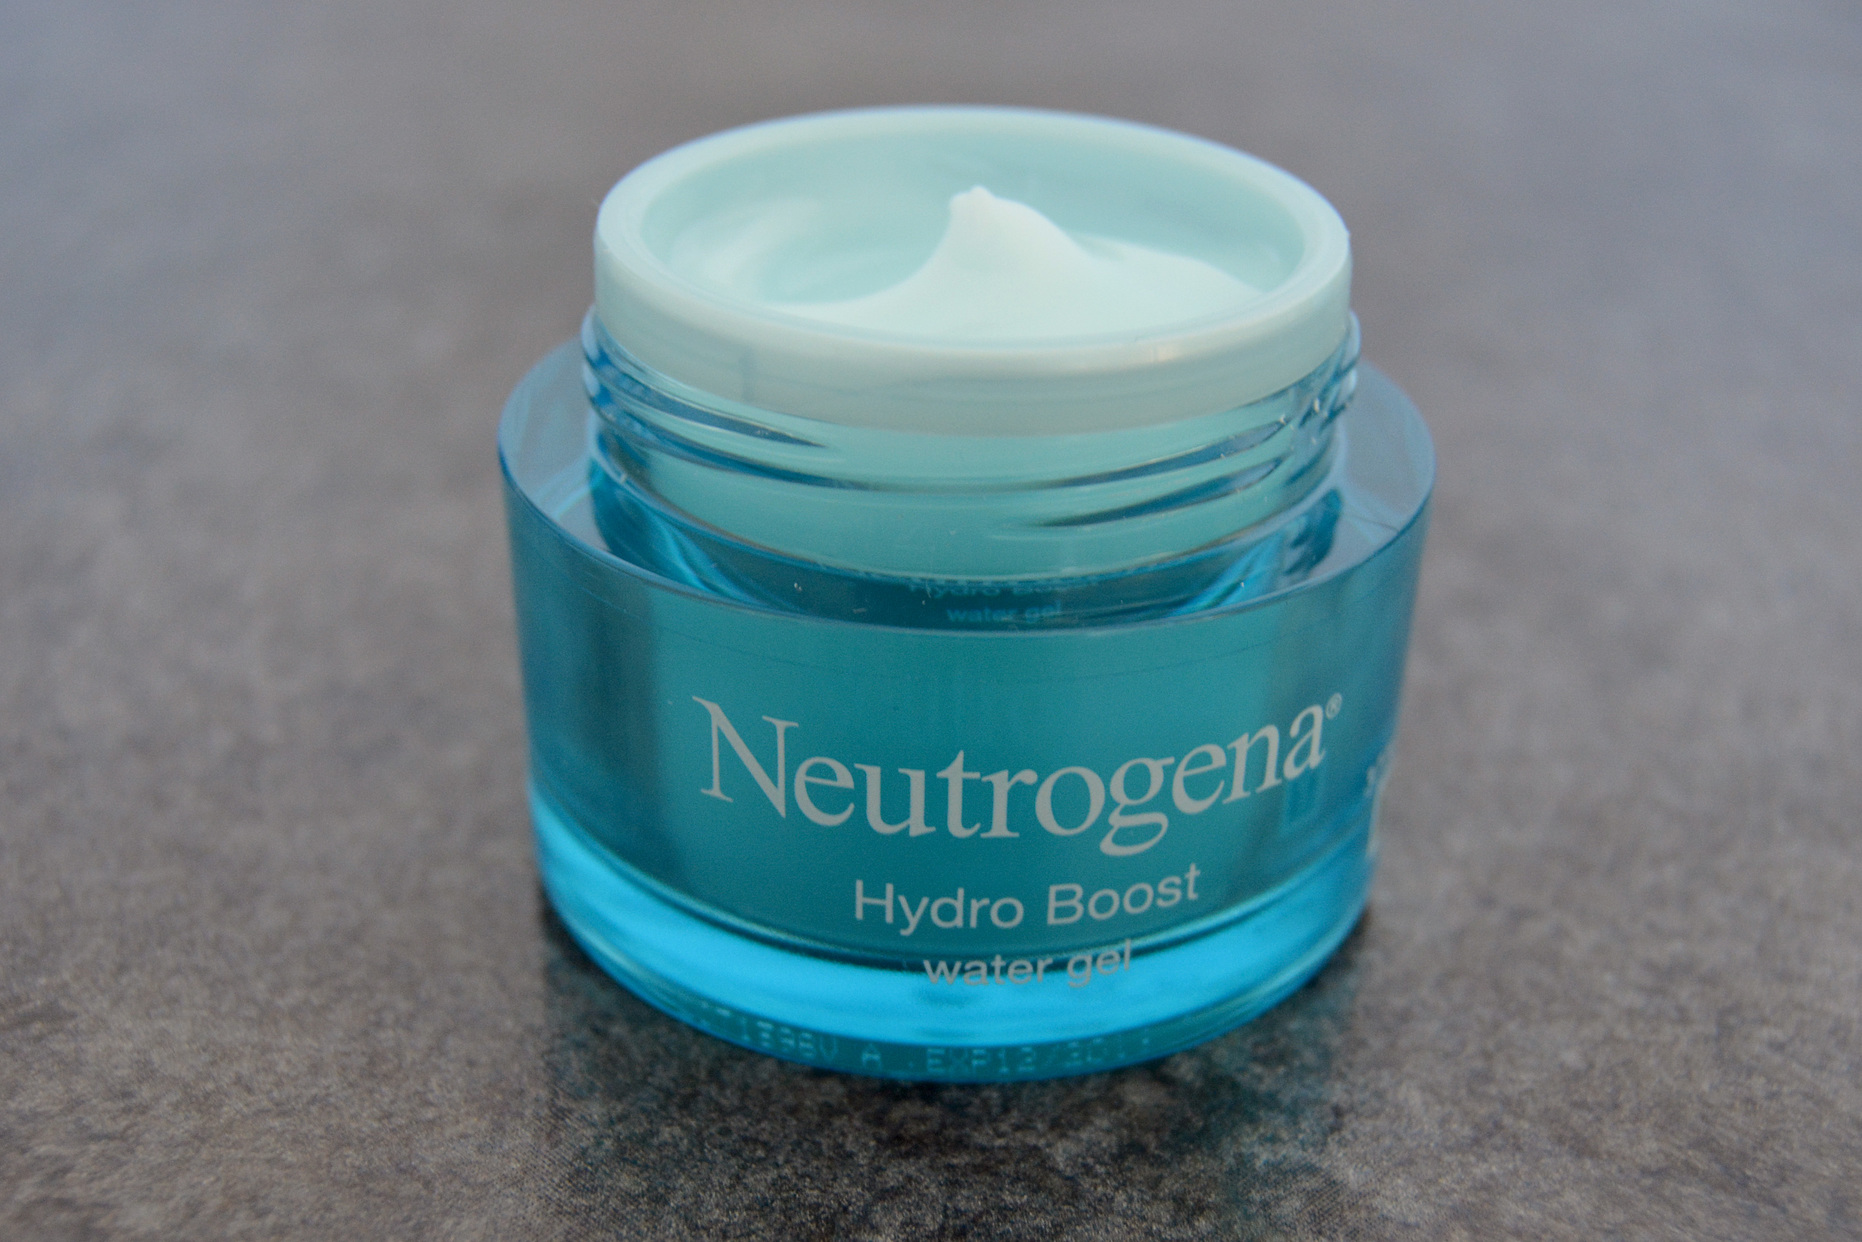 neutrogena-hydro-boost-2